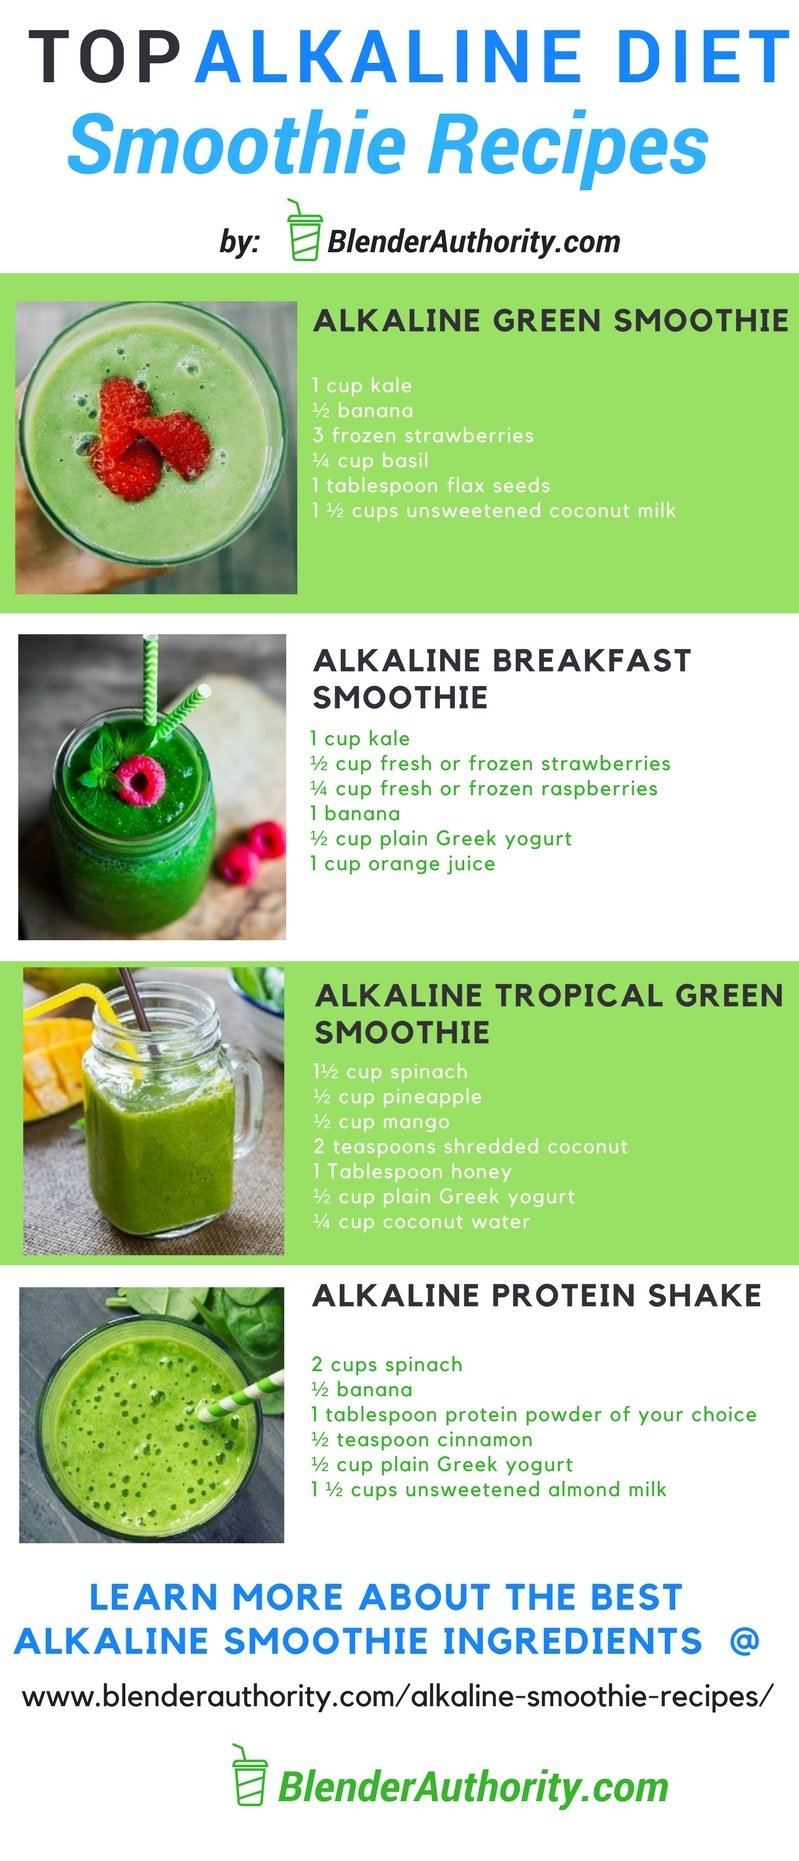 Alkaline Smoothie Recipes and the Overview of the Alkaline Diet